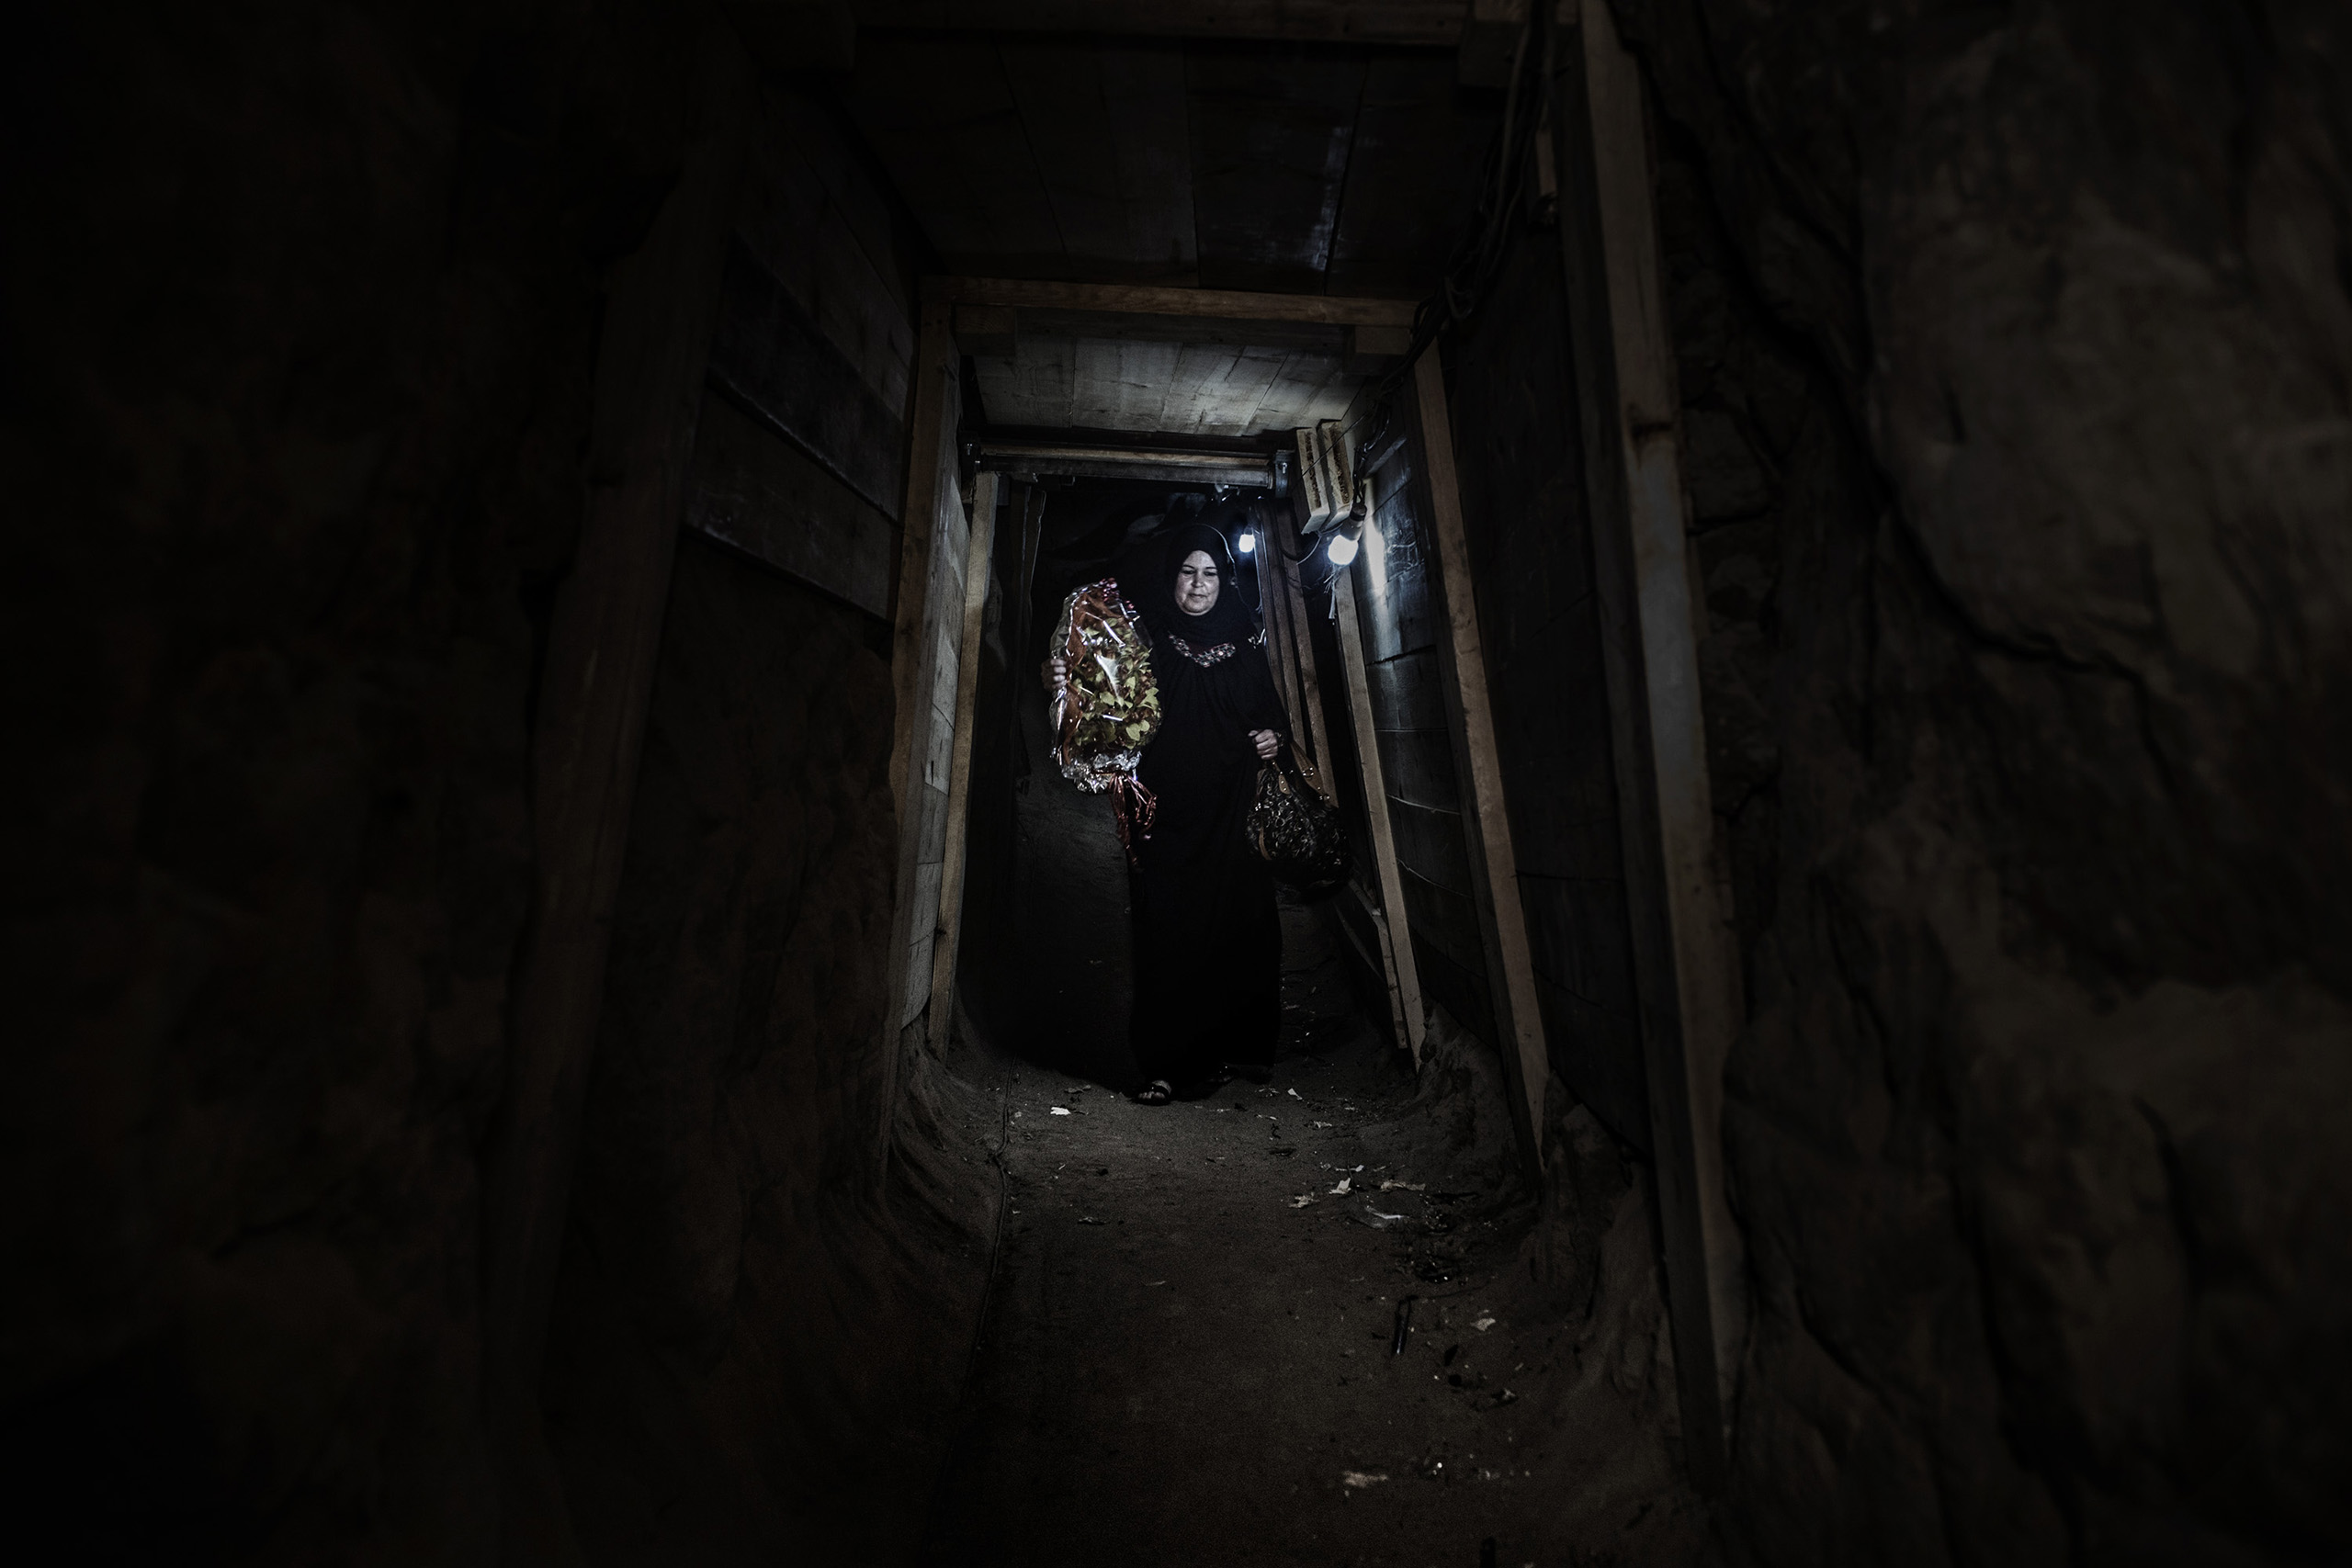 A woman in Gaza, without a travel permit, passes through  an underground tunnel on her way to a party in Egypt, carrying a bouquet of flowers.